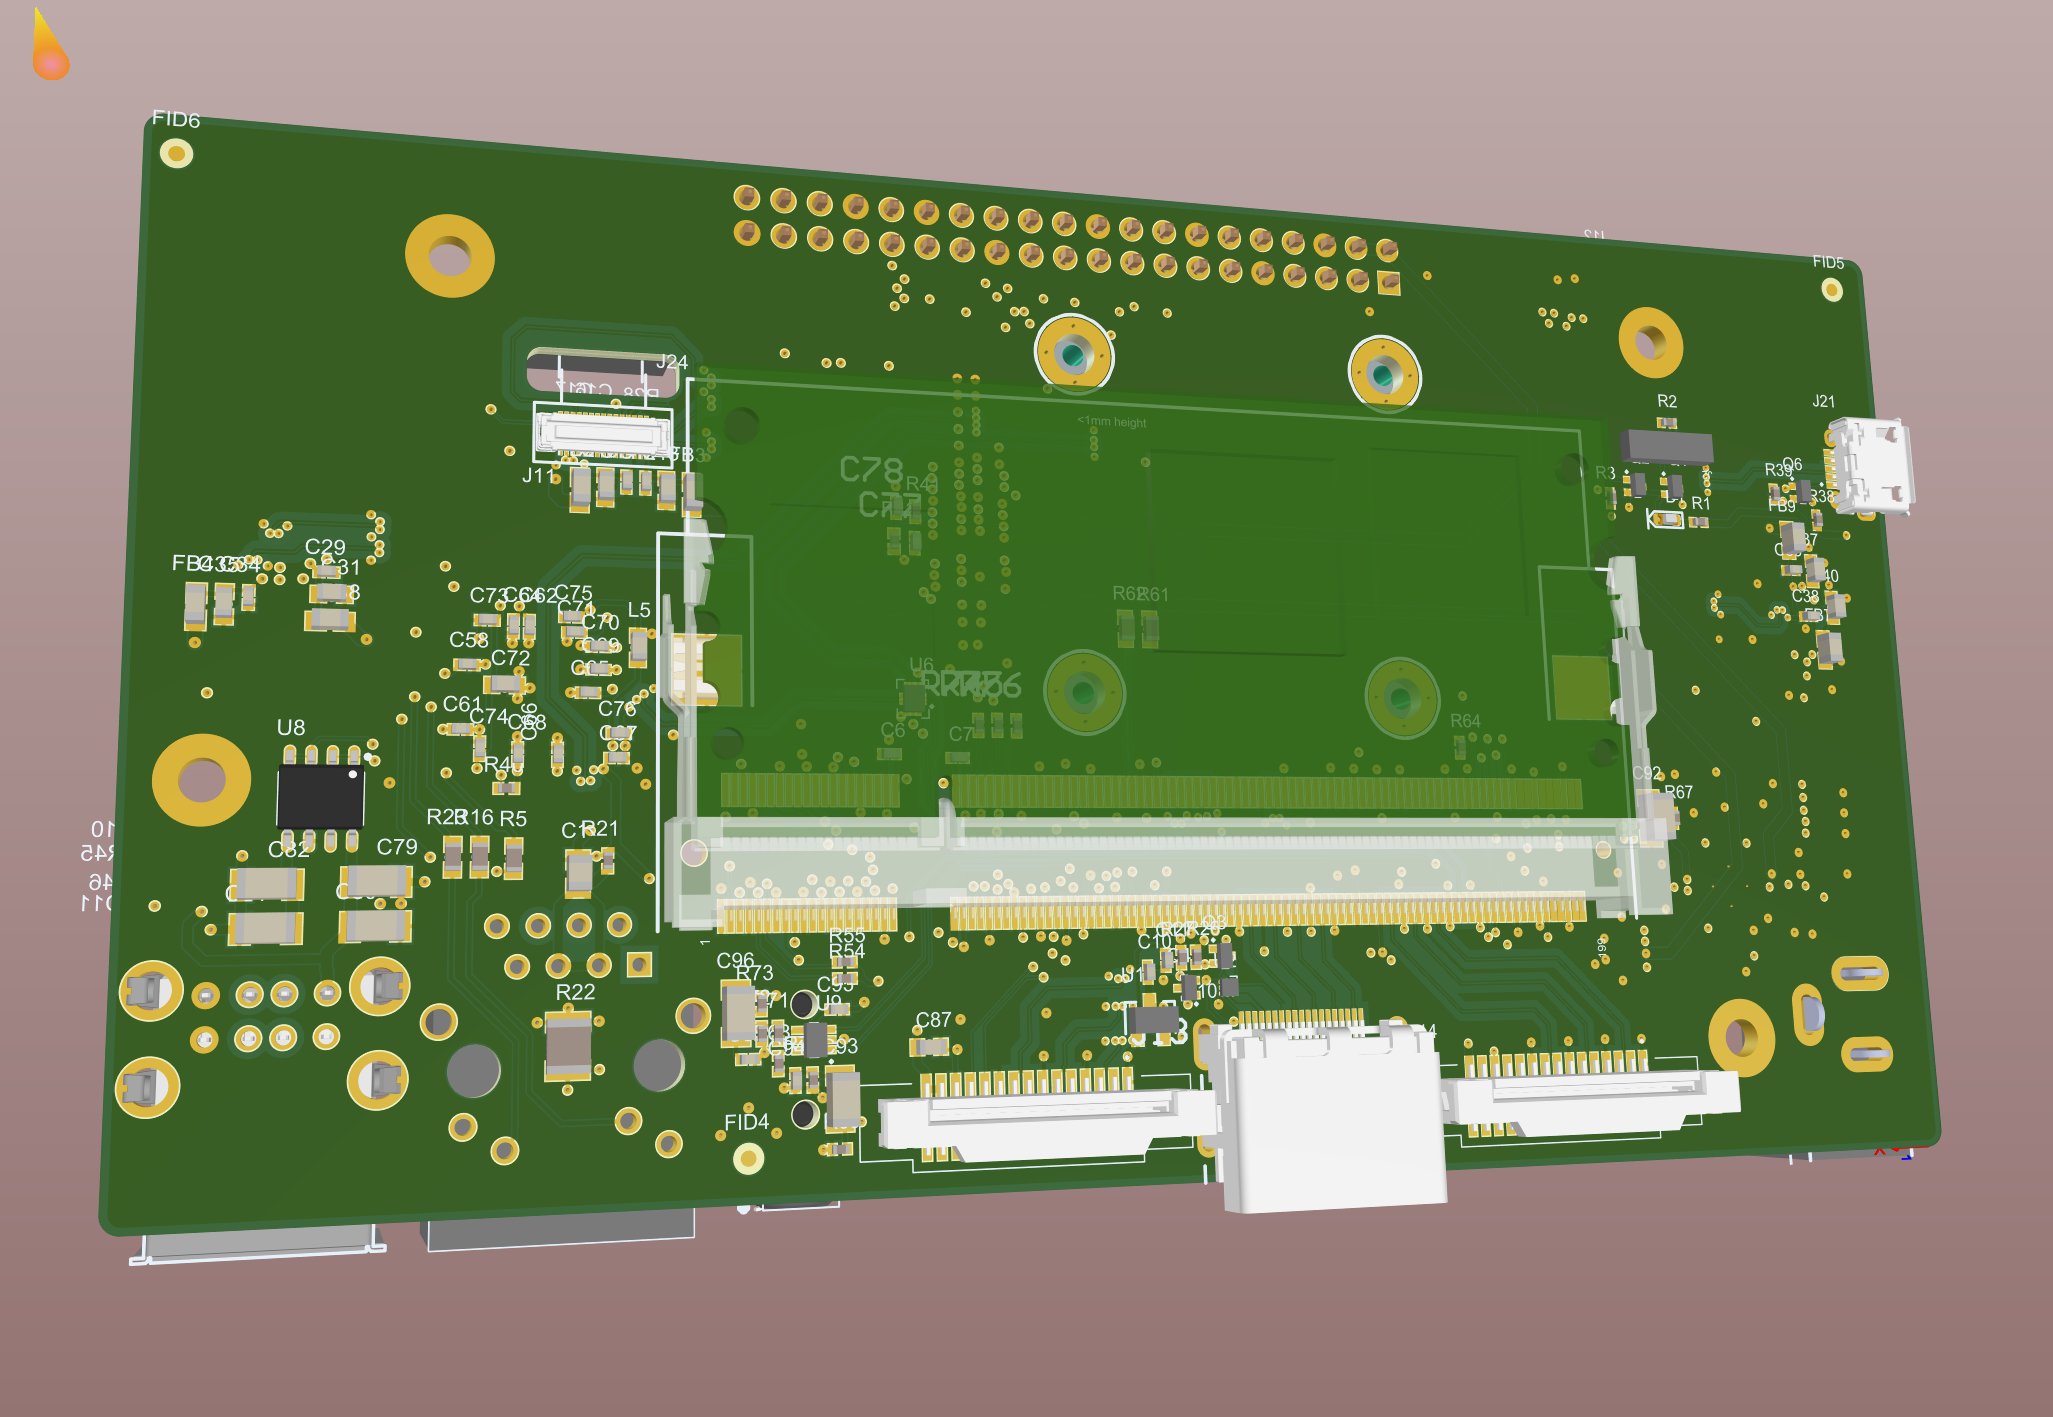 Coupling the Myriad X with direct MIPI image sensors and the Raspberry Pi allows the power of the Myriad X with the huge number of excellent Githubs, libraries, and ease-of-us of the Raspberry Pi